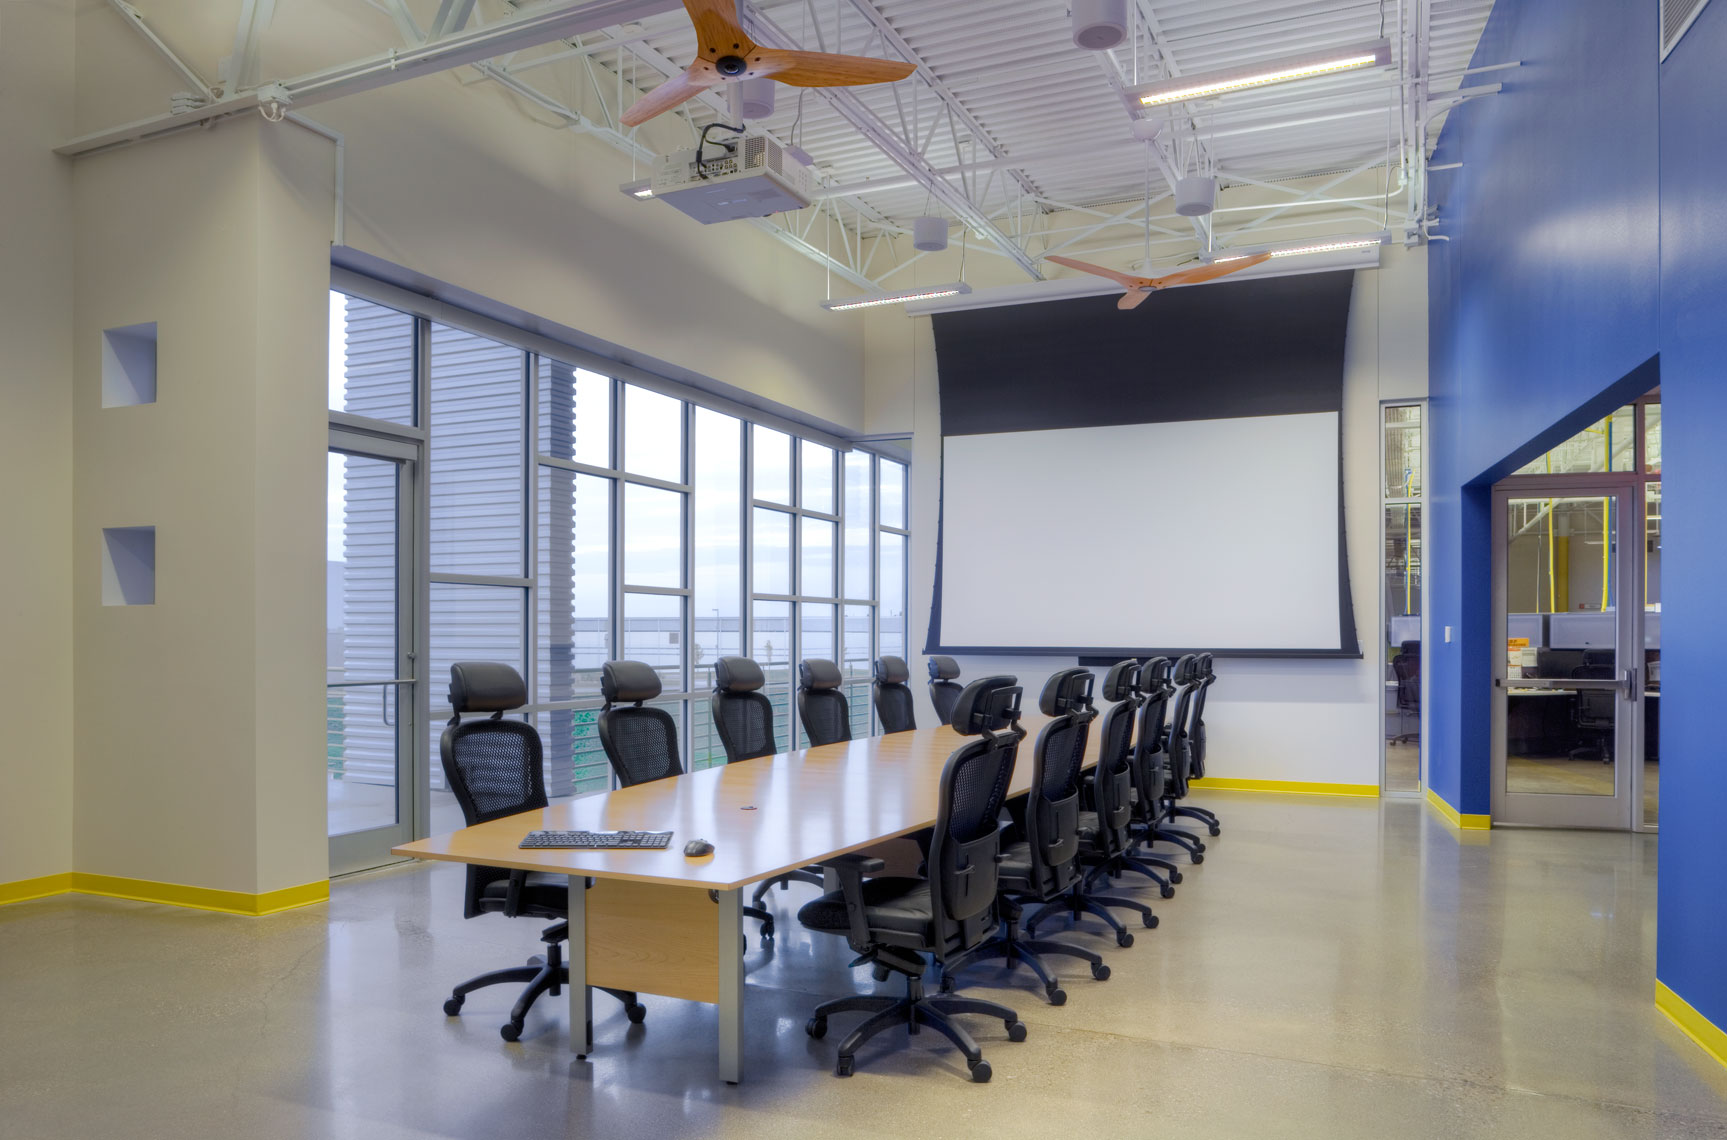 architectural conference room with long table and windows